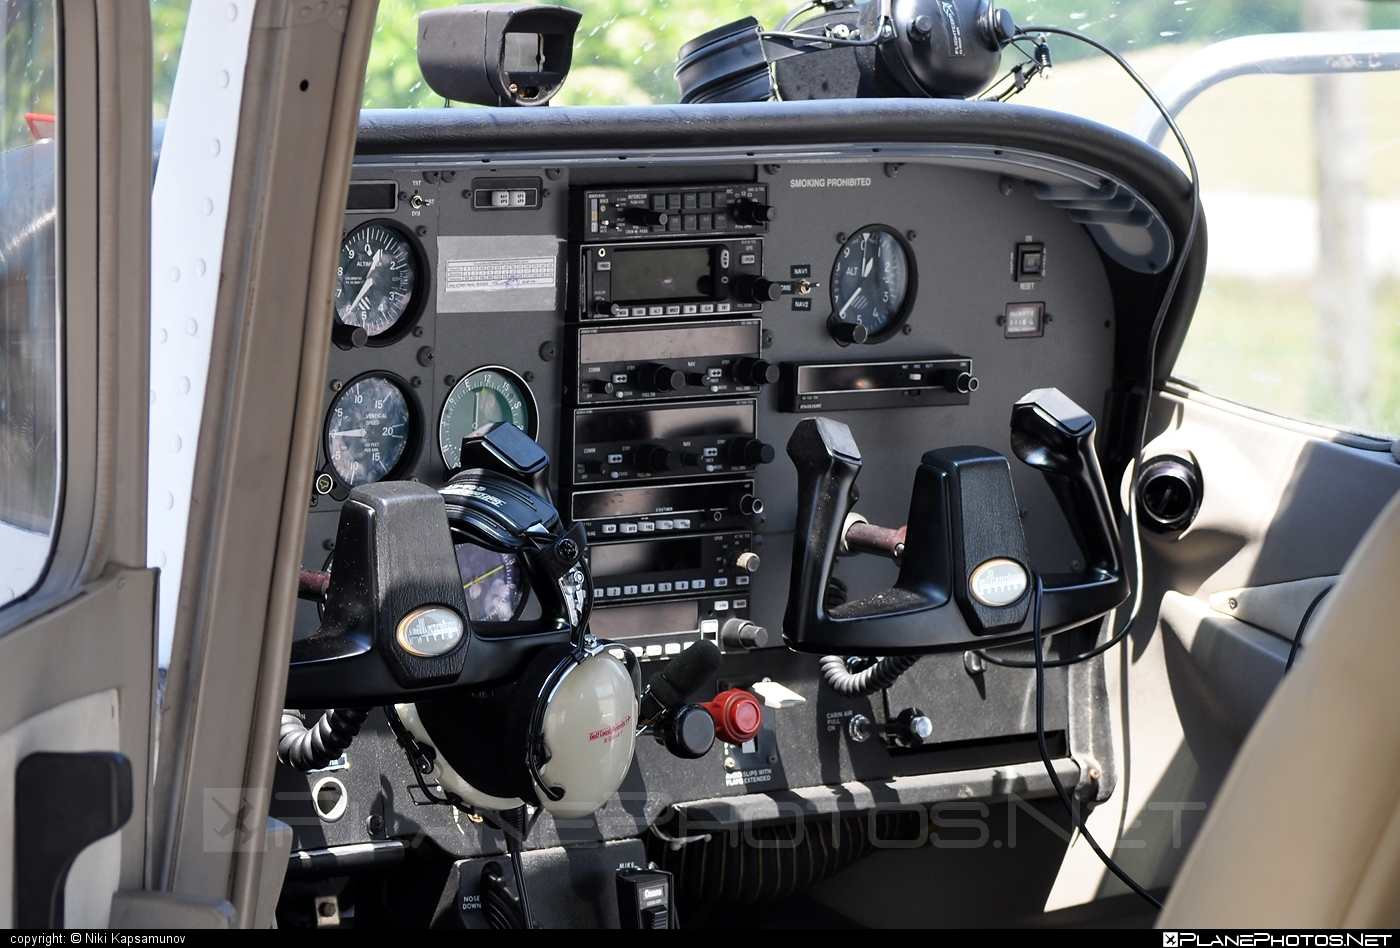 Cessna 172S Skyhawk SP - OM-AKT operated by Air Carpatia #cessna #cessna172 #cessna172s #cessna172skyhawk #cessna172sskyhawk #cessnaskyhawk #cessnaskyhawksp #skyhawksp